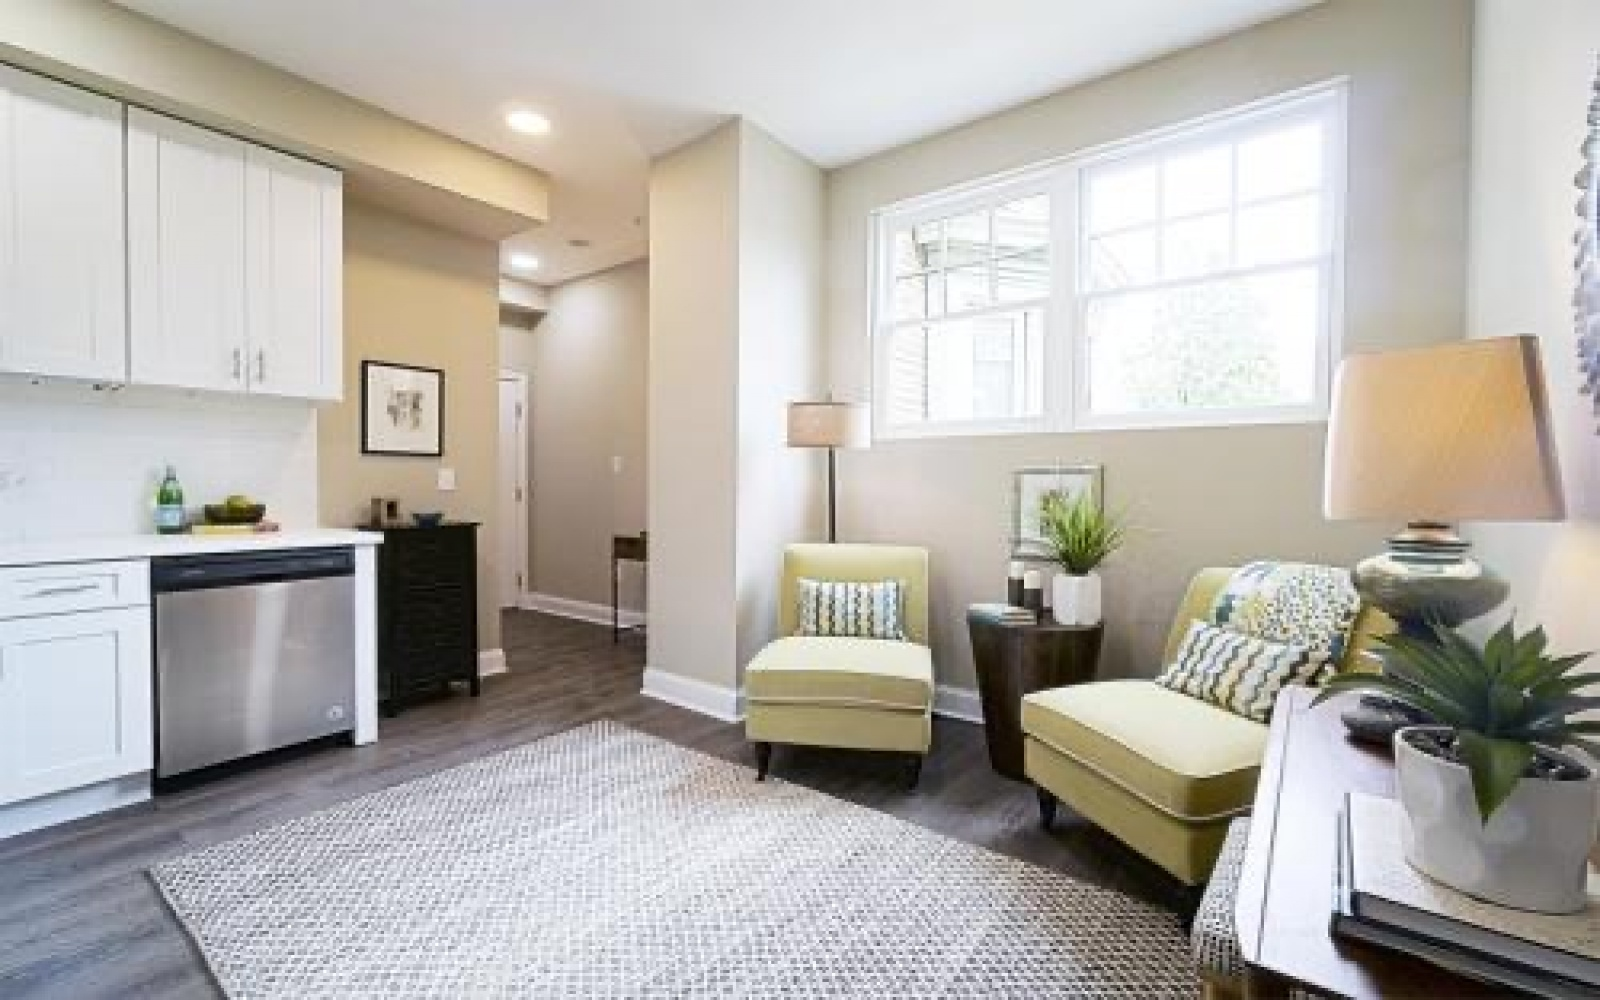 3120 16th St NW,Washington,District Of Columbia 20010,2 Bedrooms Bedrooms,1 BathroomBathrooms,Apartment,16th St,1089